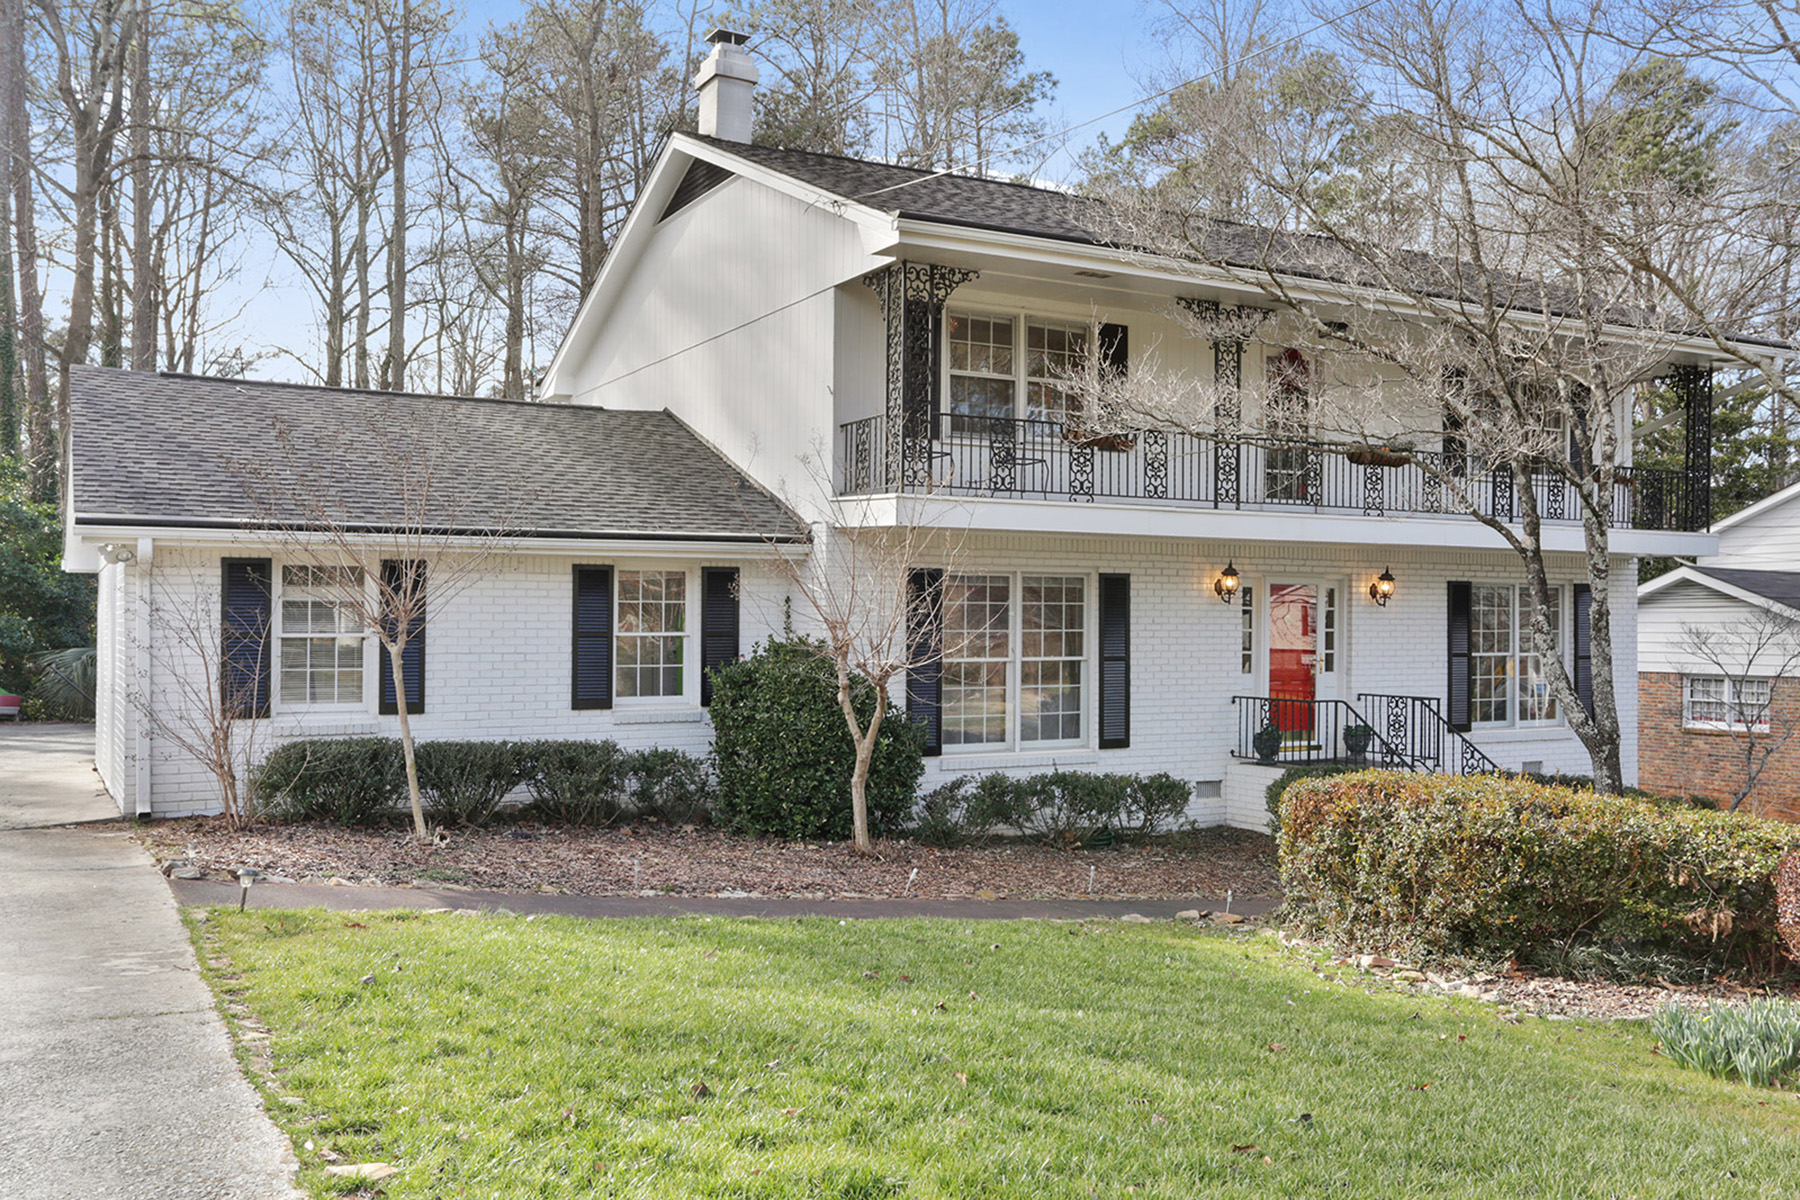 Wonderfully Renovated Home In Great Dunwoody Location 5136 Mount Vernon Way Dunwoody, Georgia 30338 United States